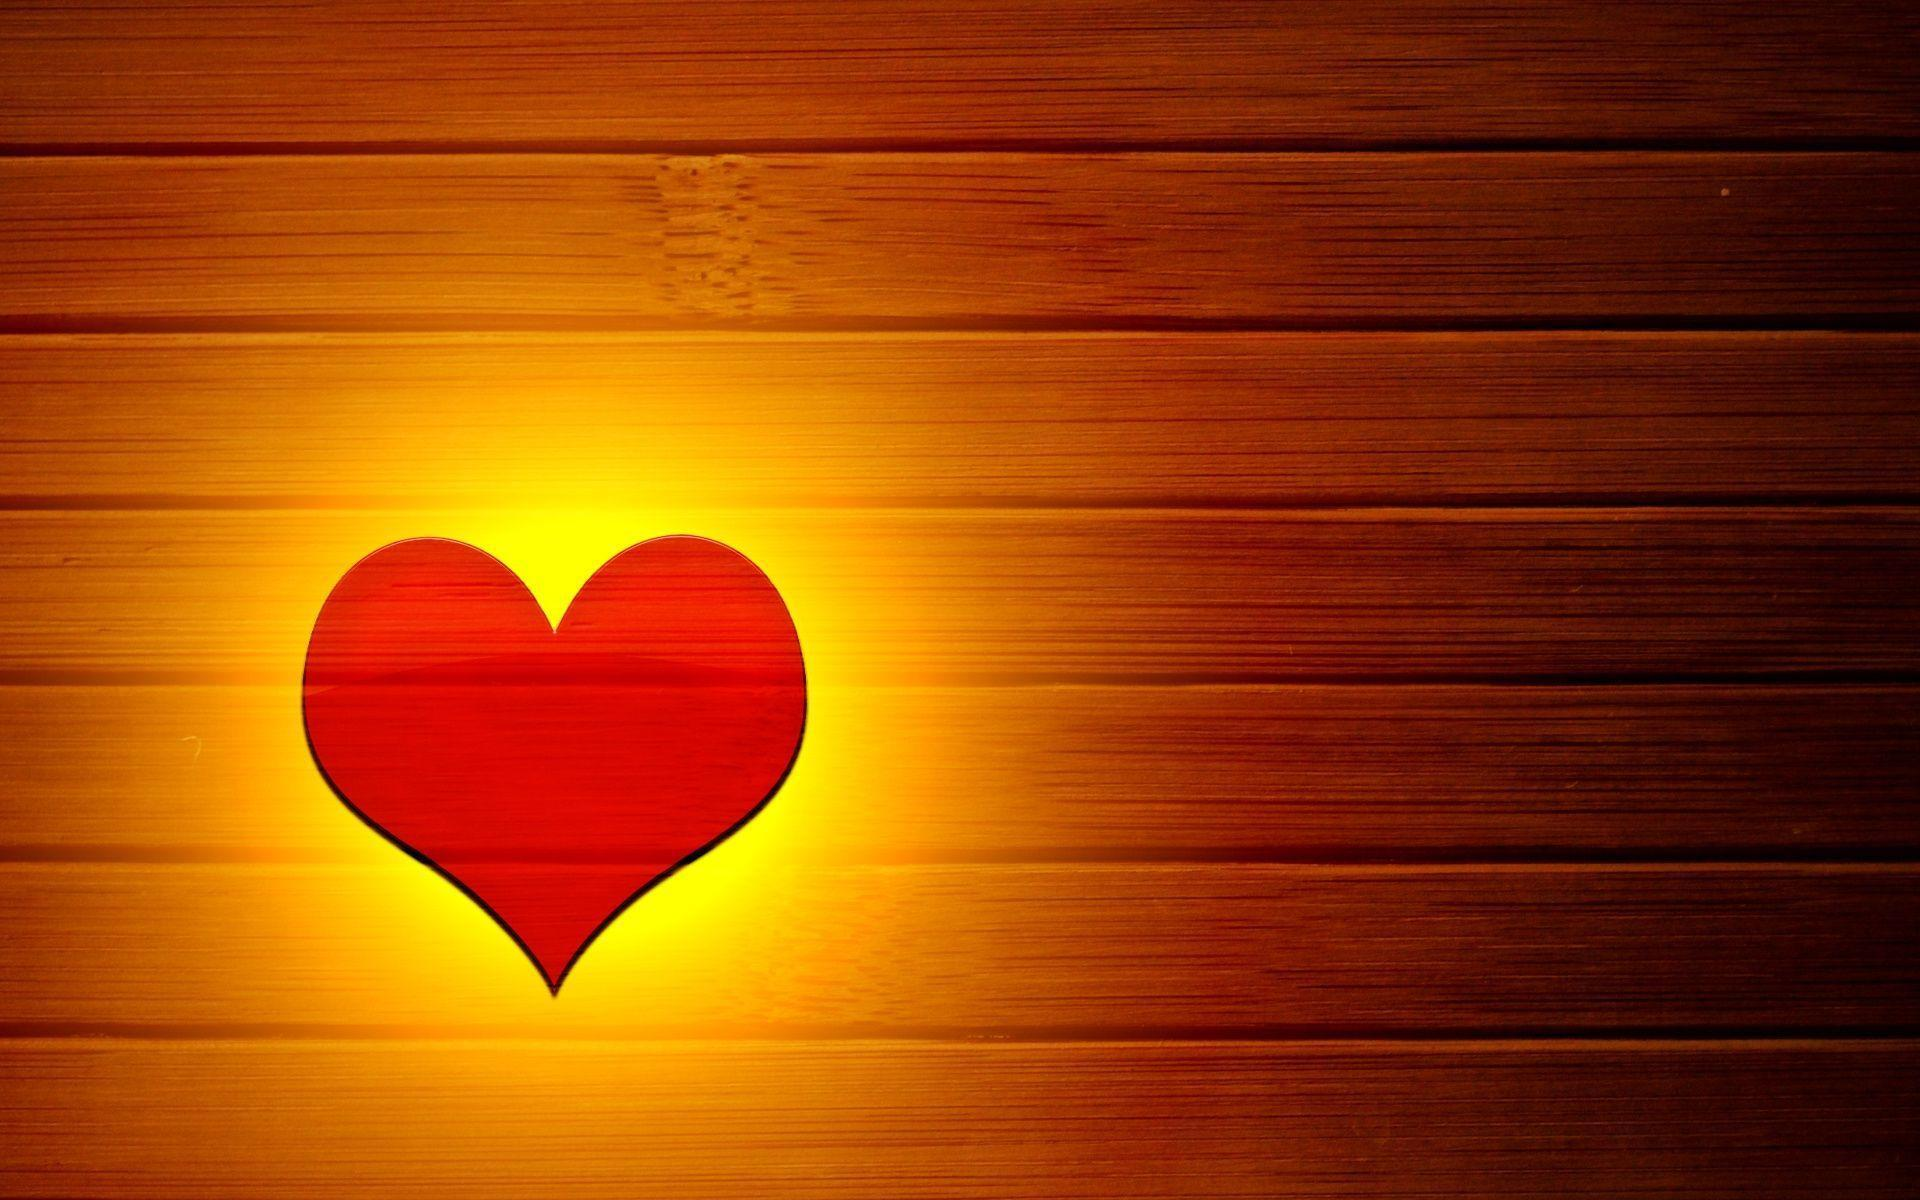 Love Wallpapers Top : Love Backgrounds Wallpapers - Wallpaper cave